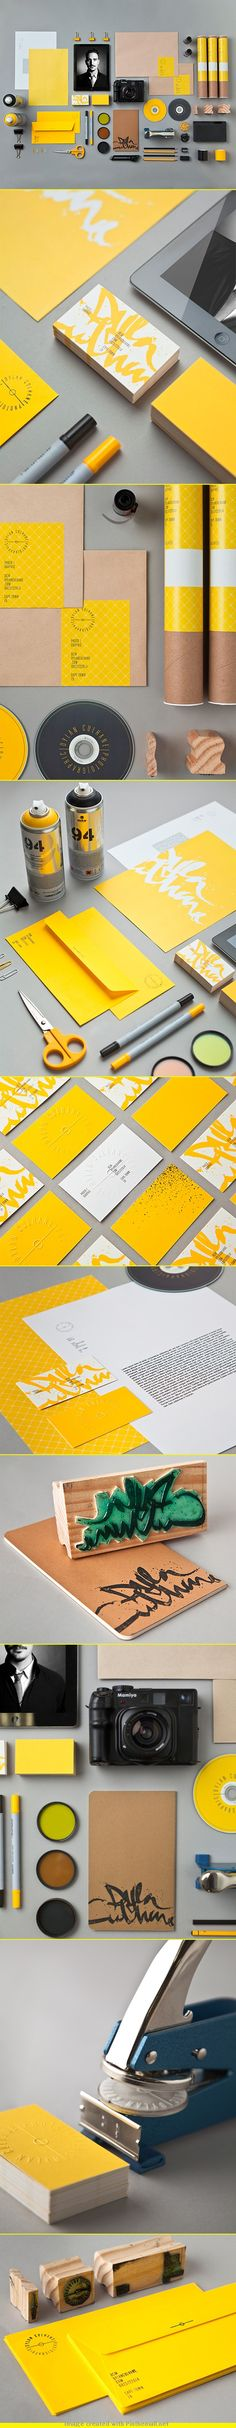 #17: Dylan Cuhane photographer identity design. The bold color choice allows this photographer to 'get attention' with his solution. Once again we see the seal used (quite pricey) as the logo. However we see two logos here, one as a seal and the other as a handwritten stamp. Although I love the solution, I wonder if it's problematic in the branding aspect since there's kind of two logos going on. As the module mentioned, handwriting one's font can be most beneficial as we see this example…